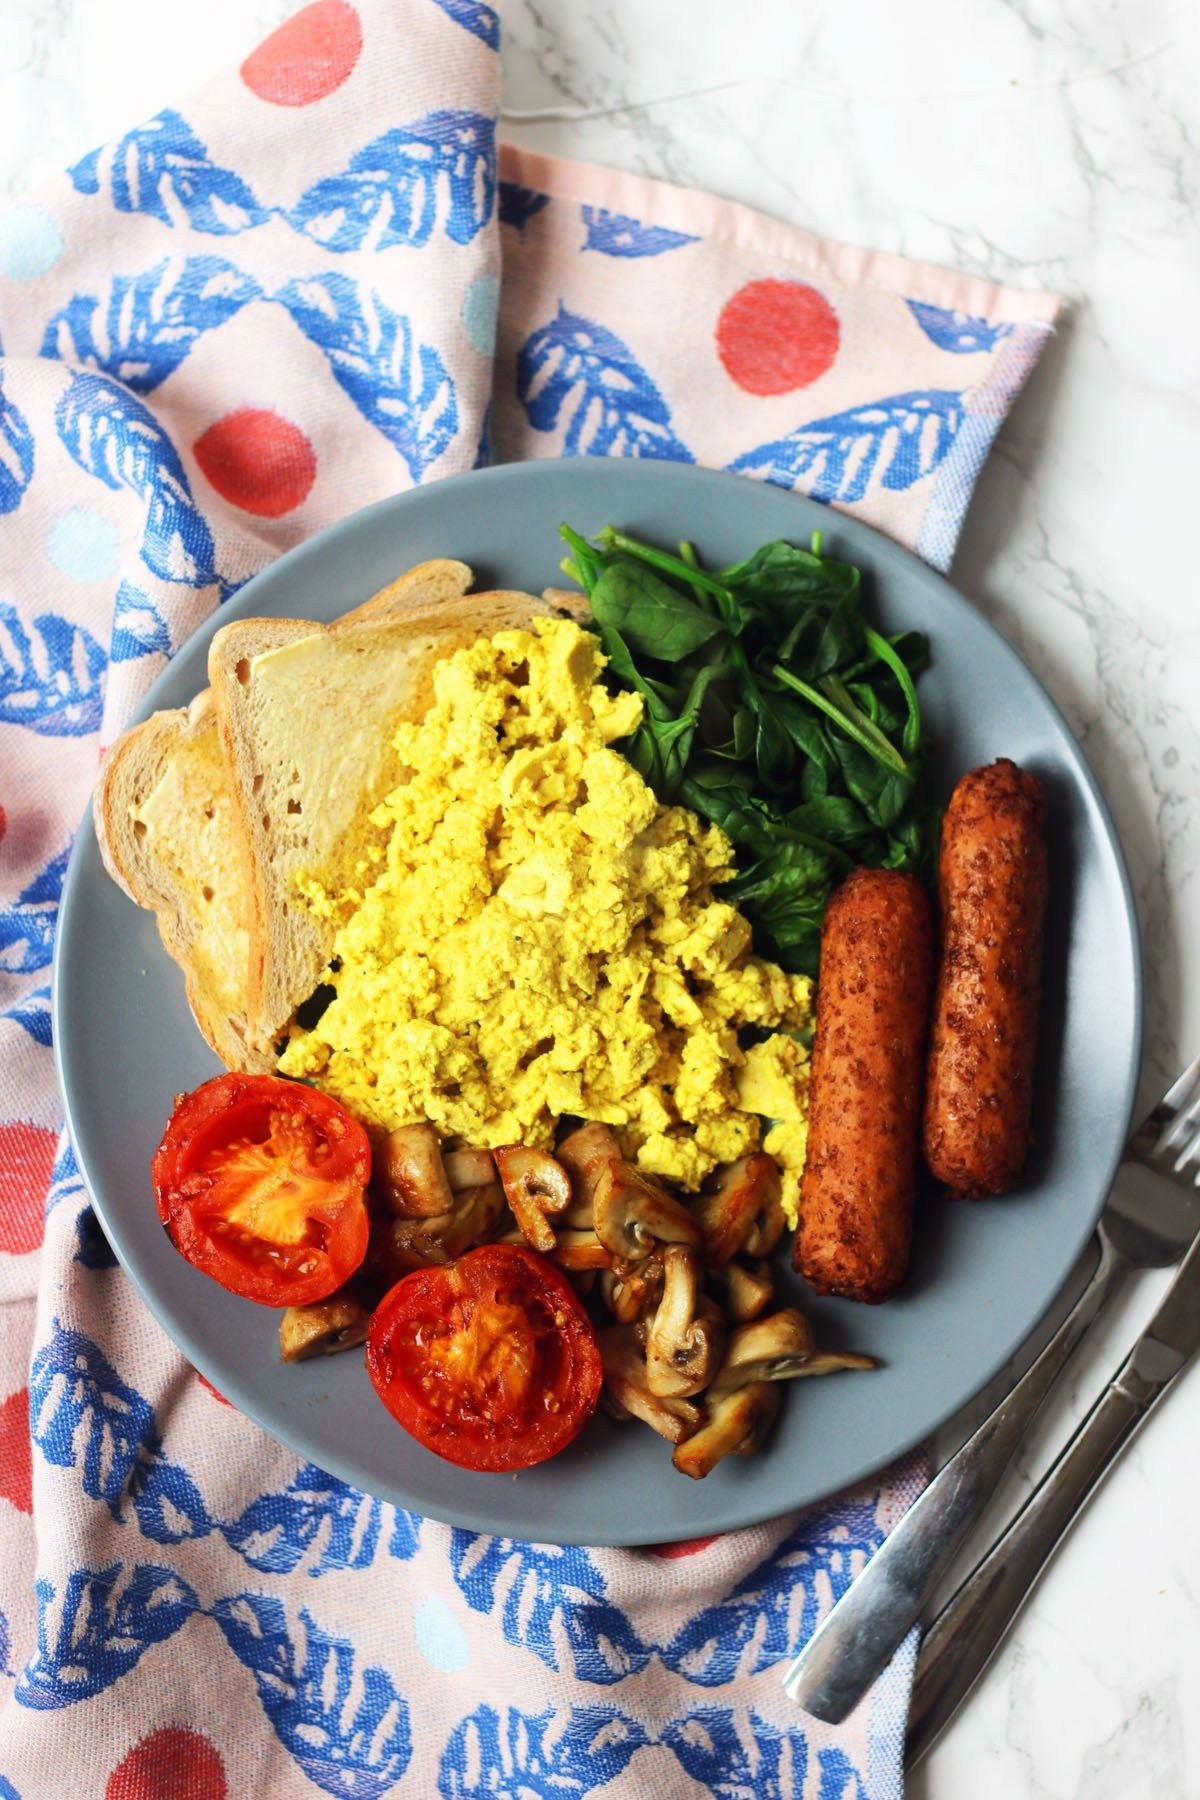 Vegan Full English Breakfast With Tofu Scramble